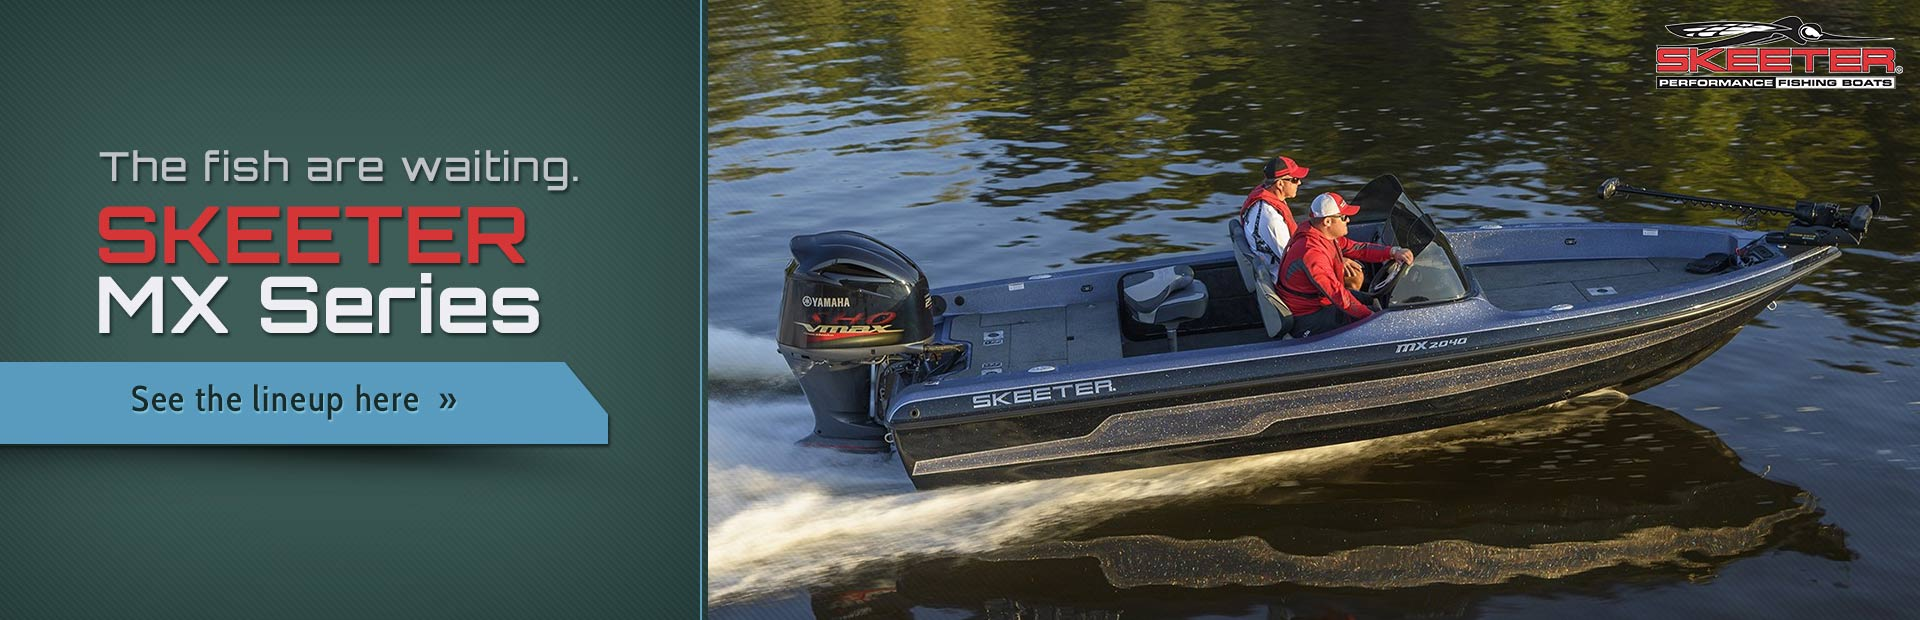 Skeeter MX Series Boats: Click here to view the models.